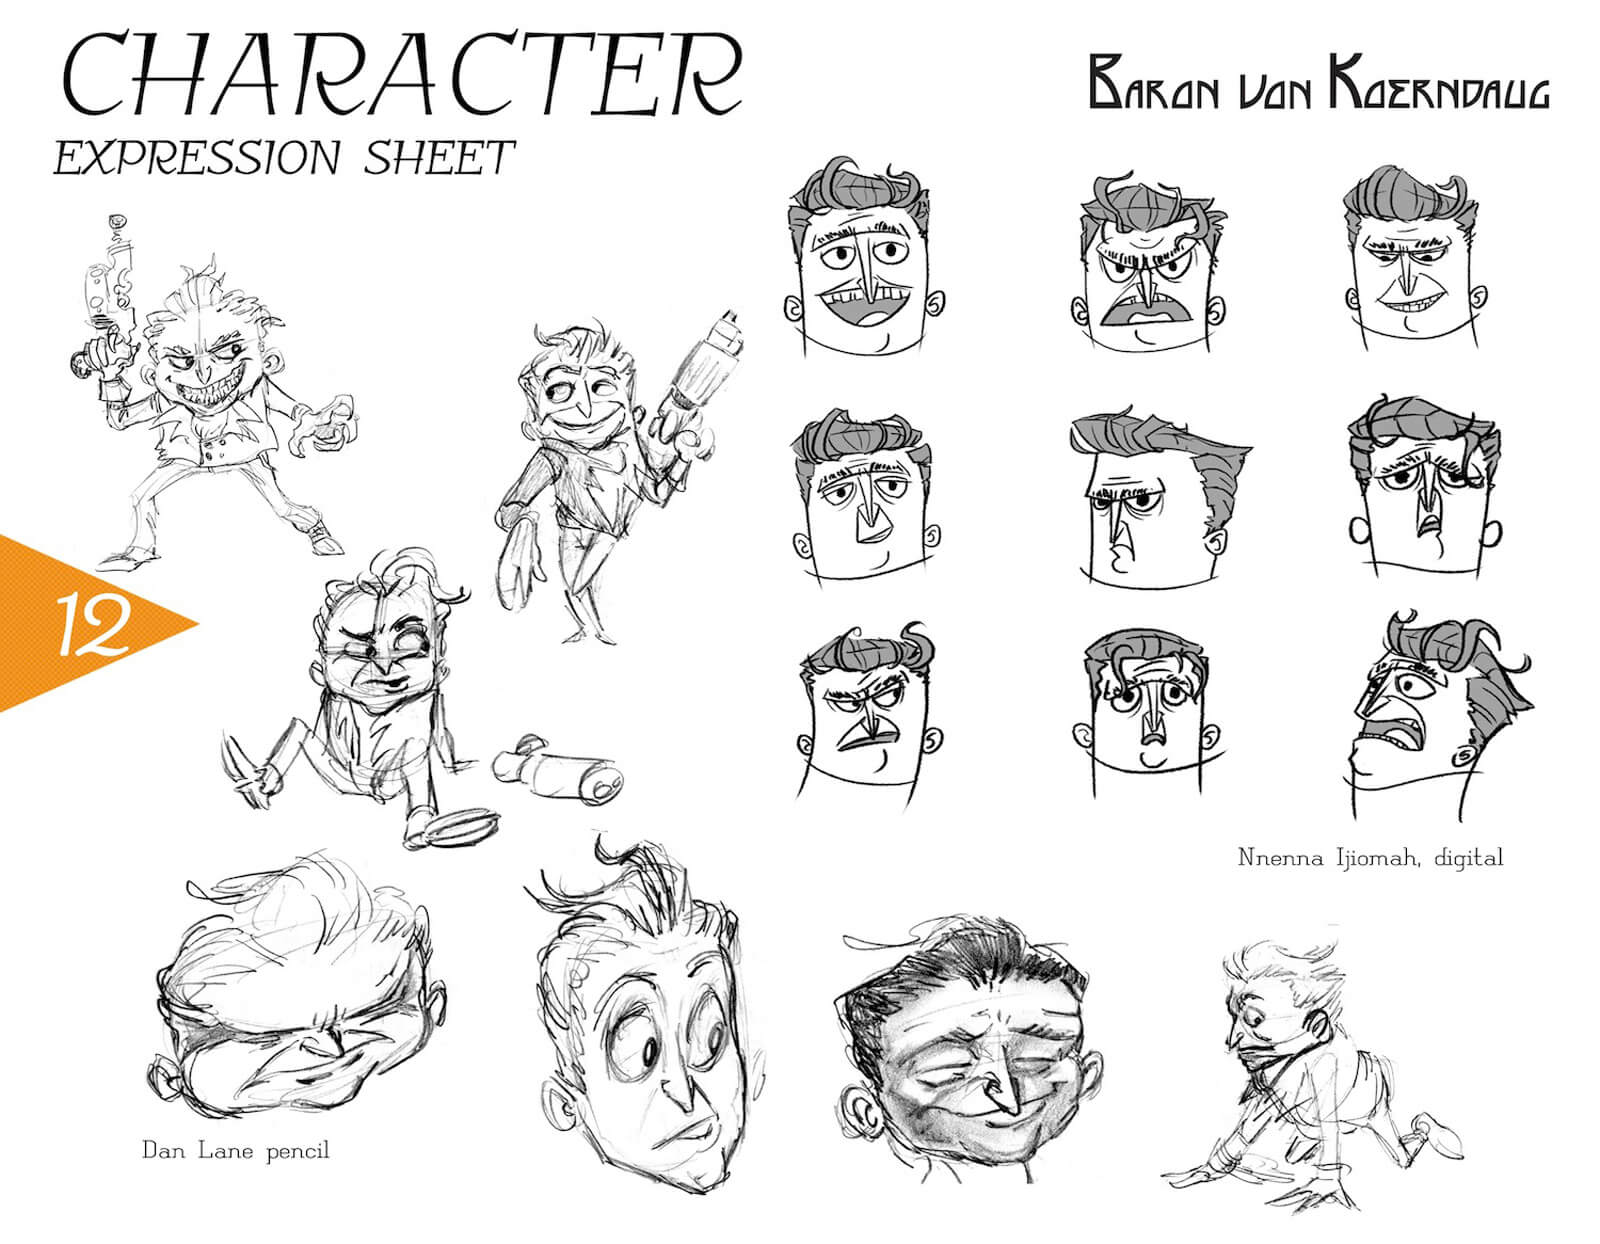 Expression sheet for Baron von Koerndaug, depicting black-and-white sketches of anger, suspicion, sadness, and others